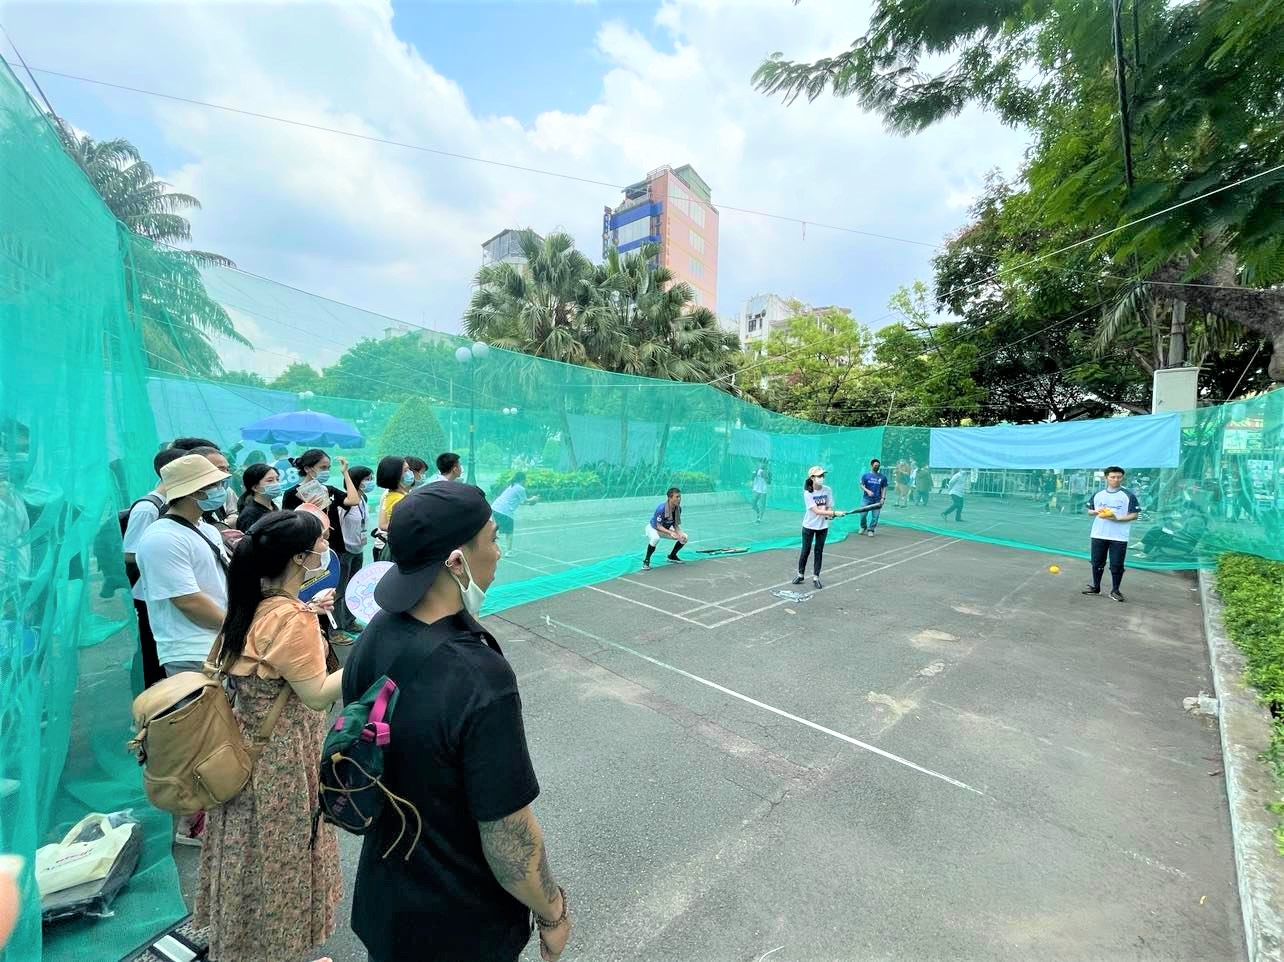 A woman tries playing baseball while others stand around to watch at the Japan Vietnam Festival in Ho Chi Minh City on April 17, 2021. Photo: Dong Nguyen / Tuoi Tre News